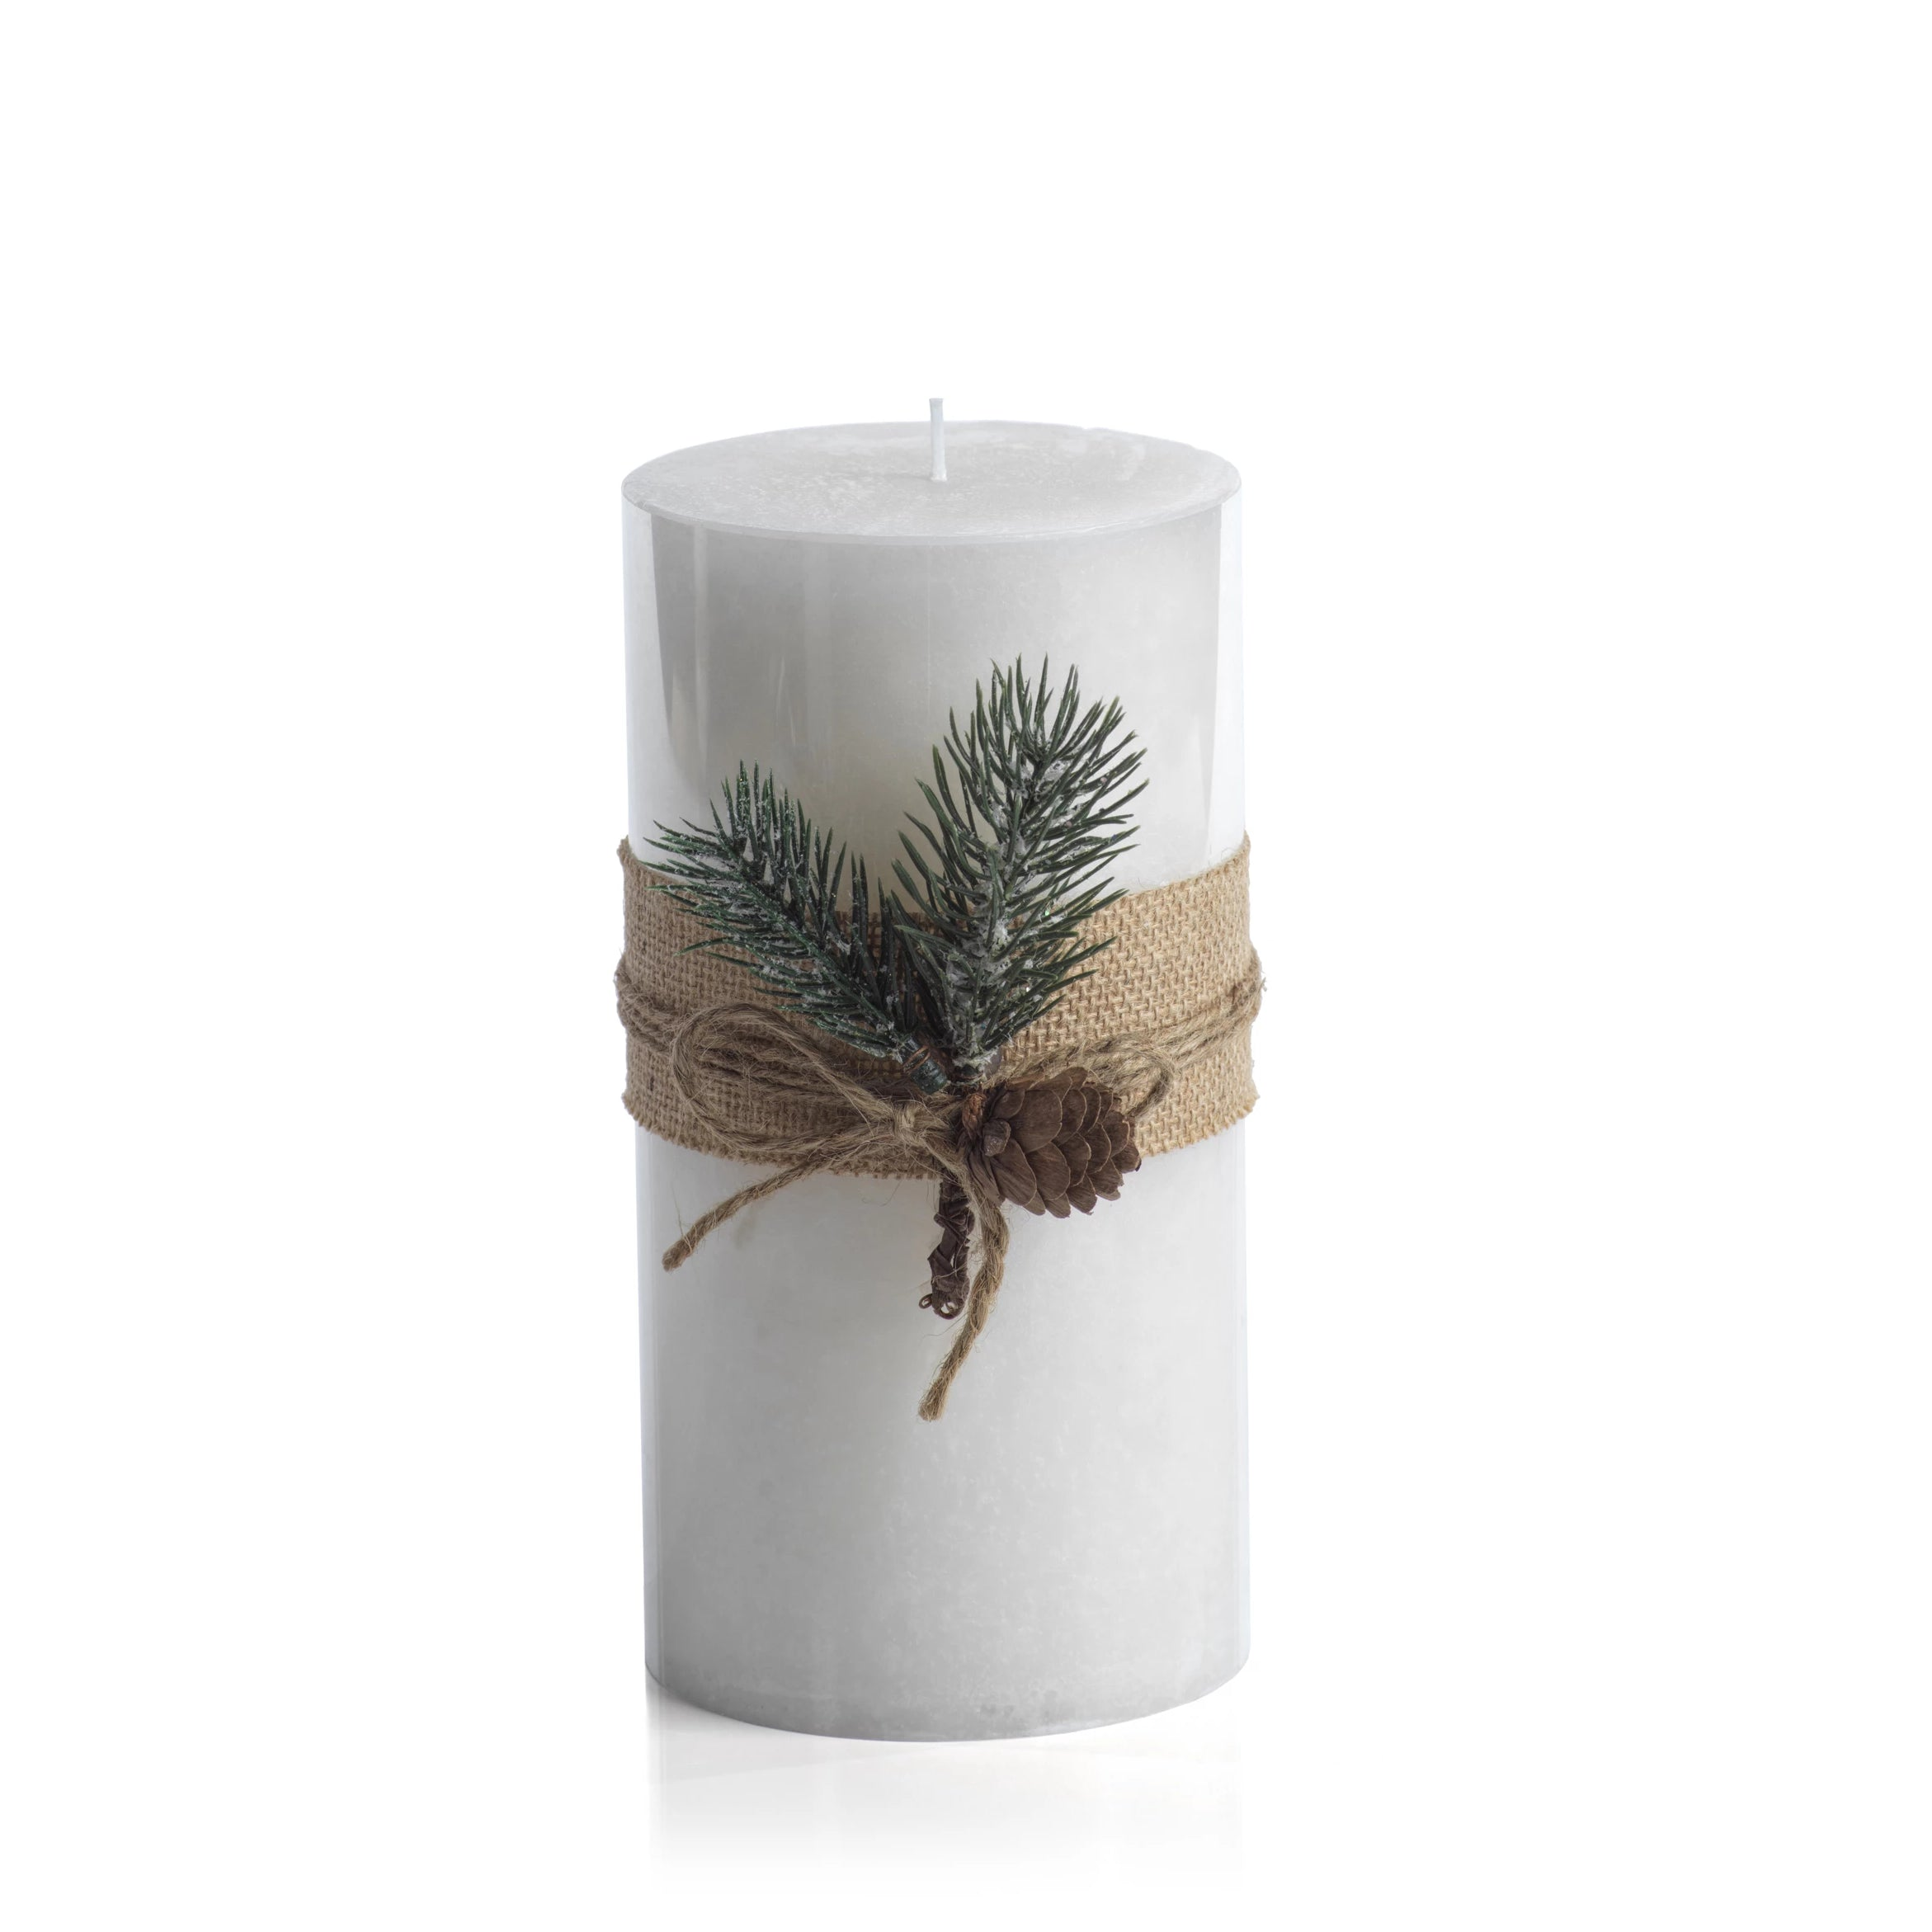 Siberian Fir Fragranced Pillar Candles - CARLYLE AVENUE